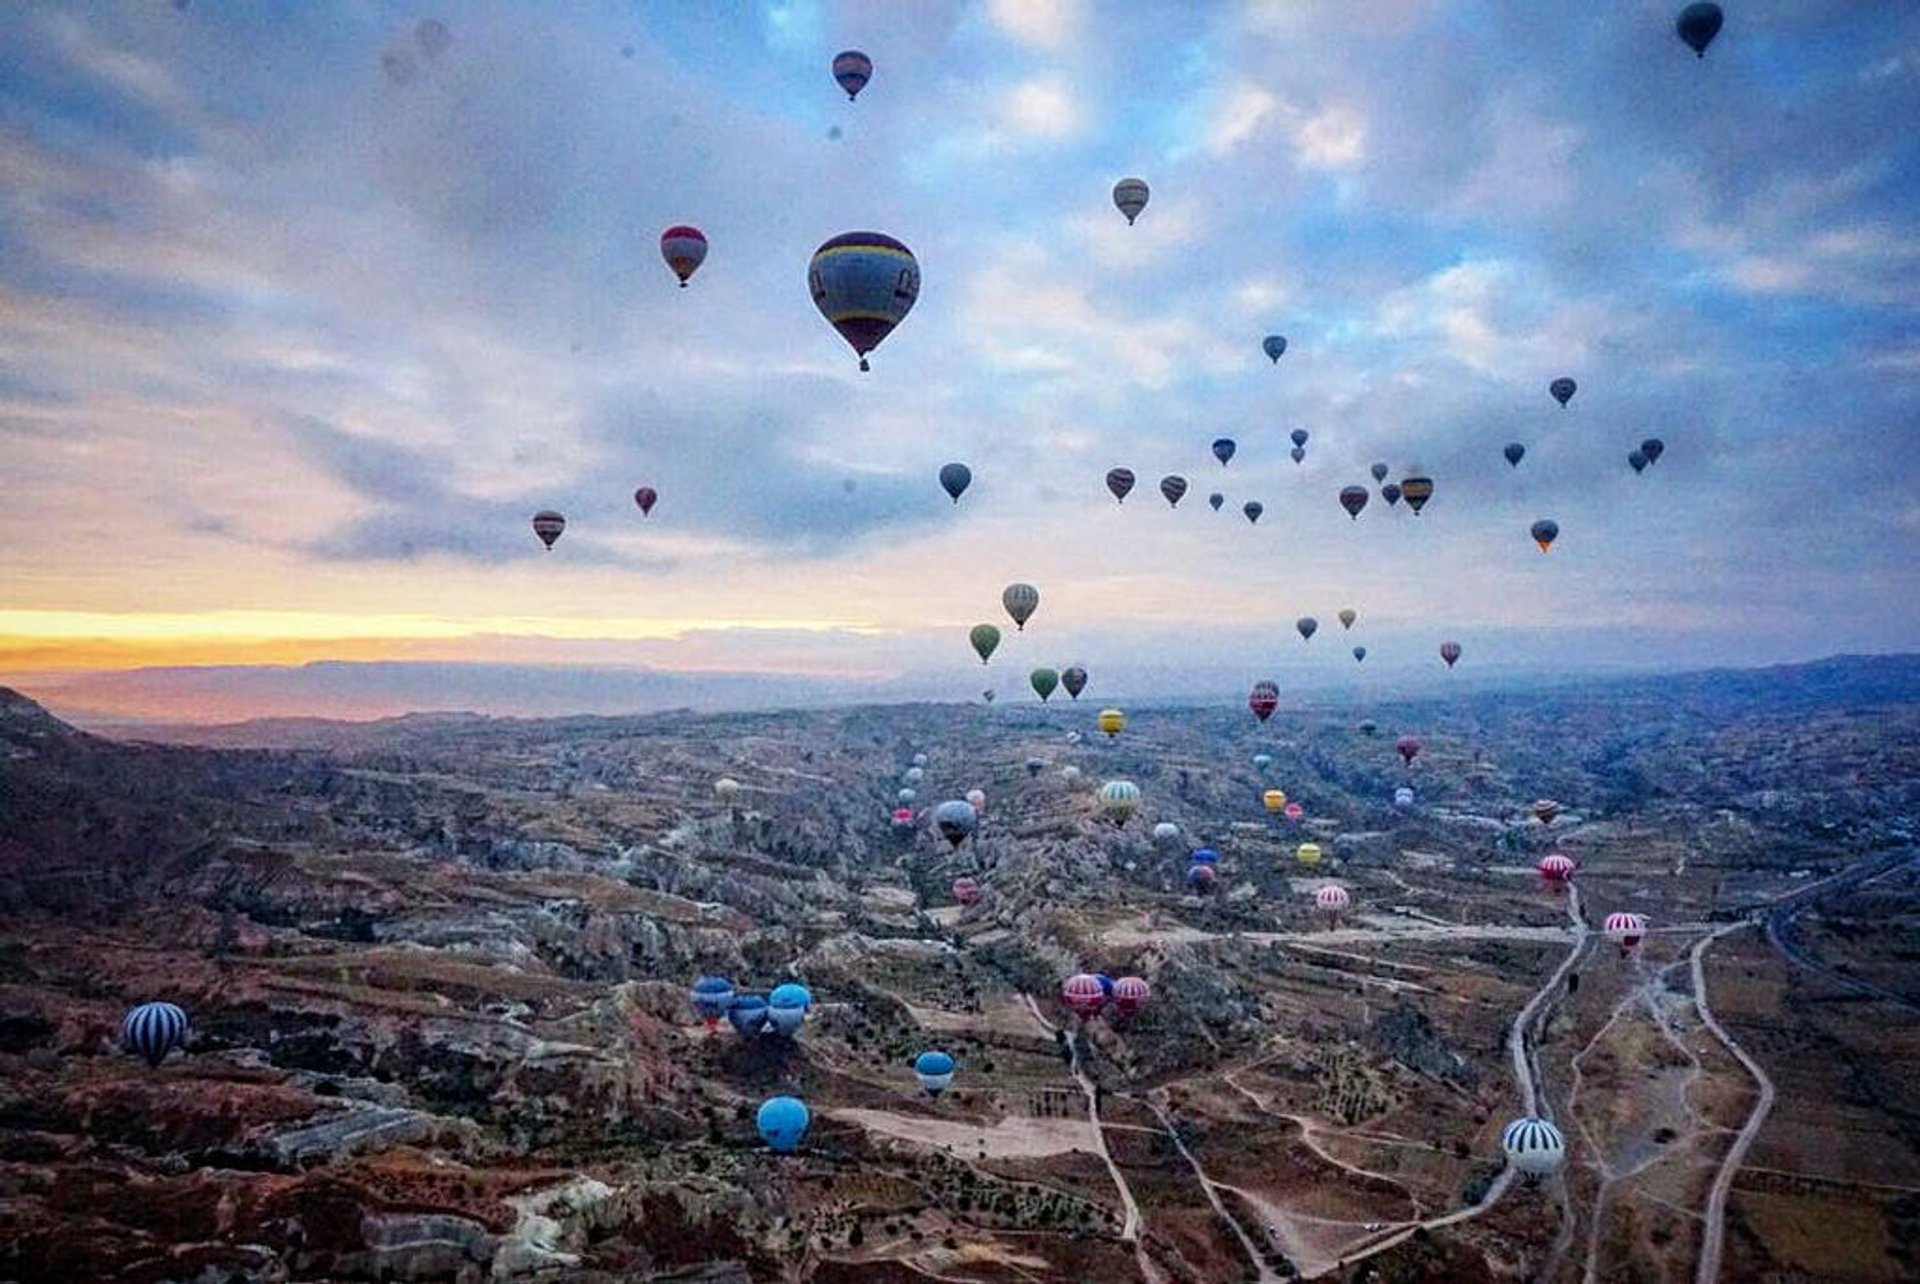 Best time for Ballooning Сhallenge in Cappadocia 2020